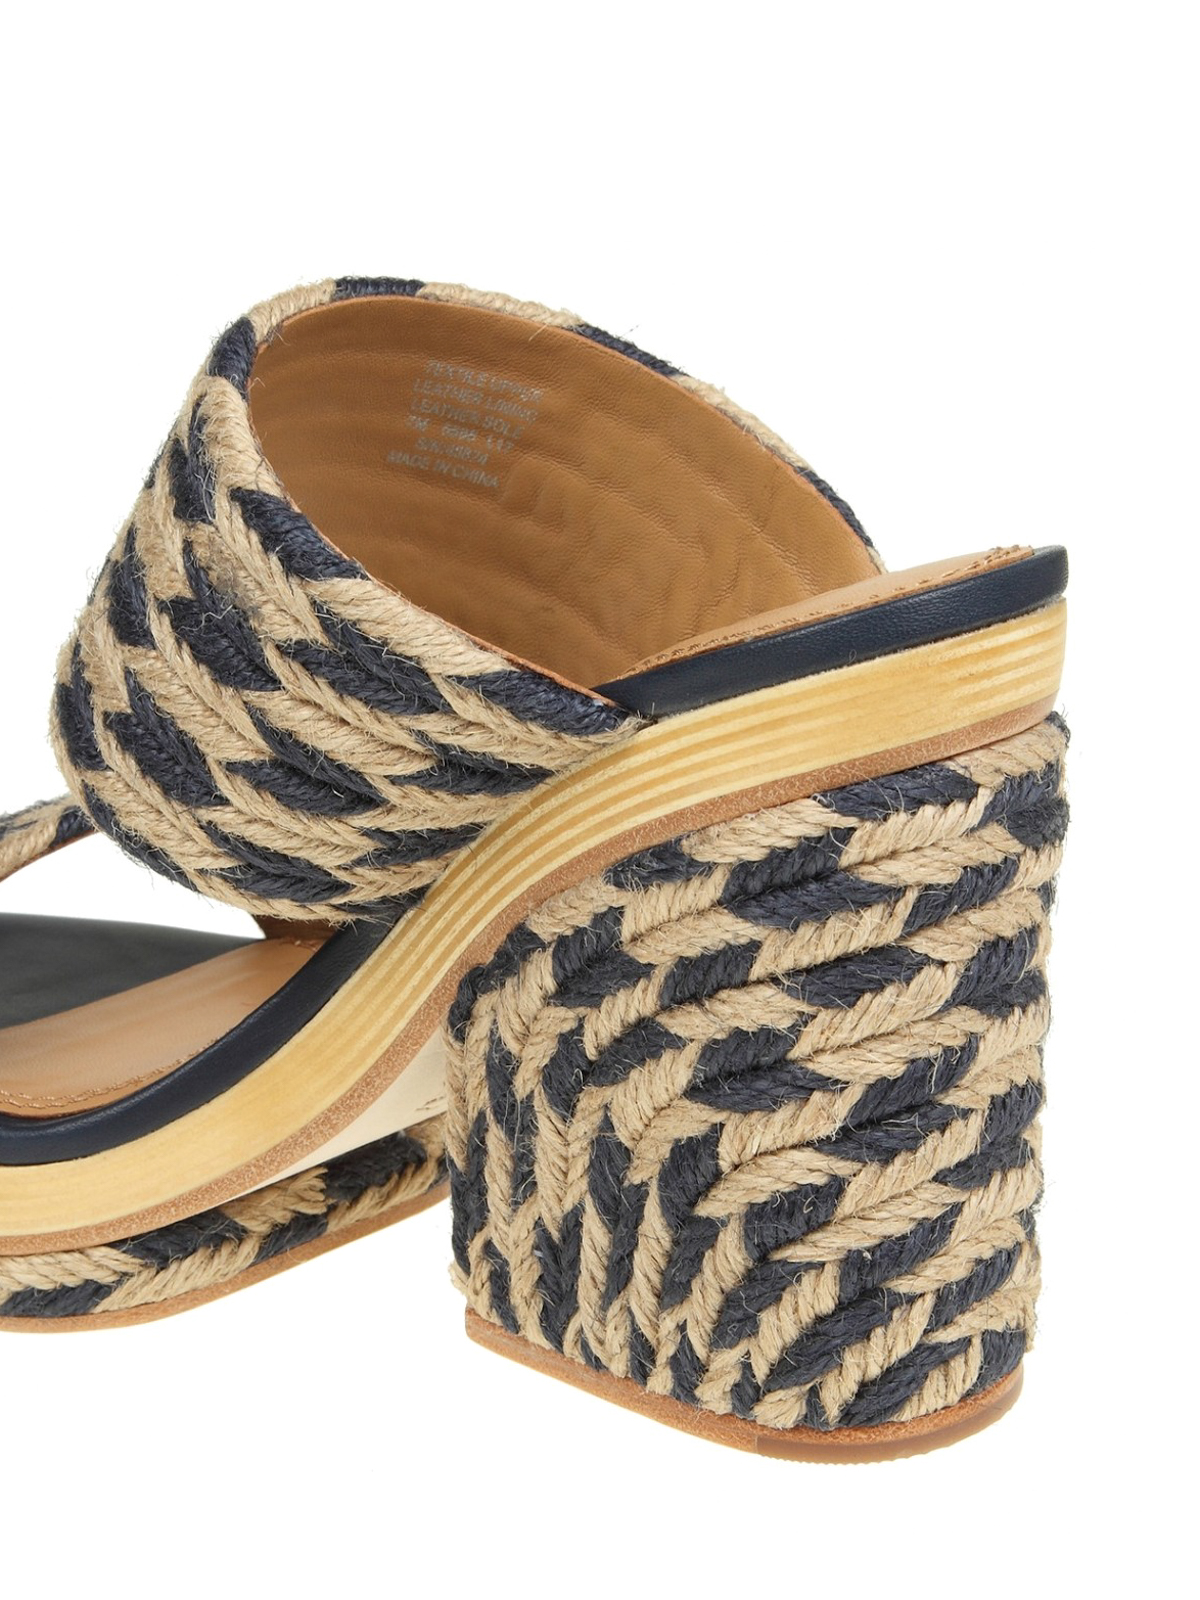 6dba186af618 Tory Burch - Lola Slide navy jute heeled sandals - sandals - 45874444